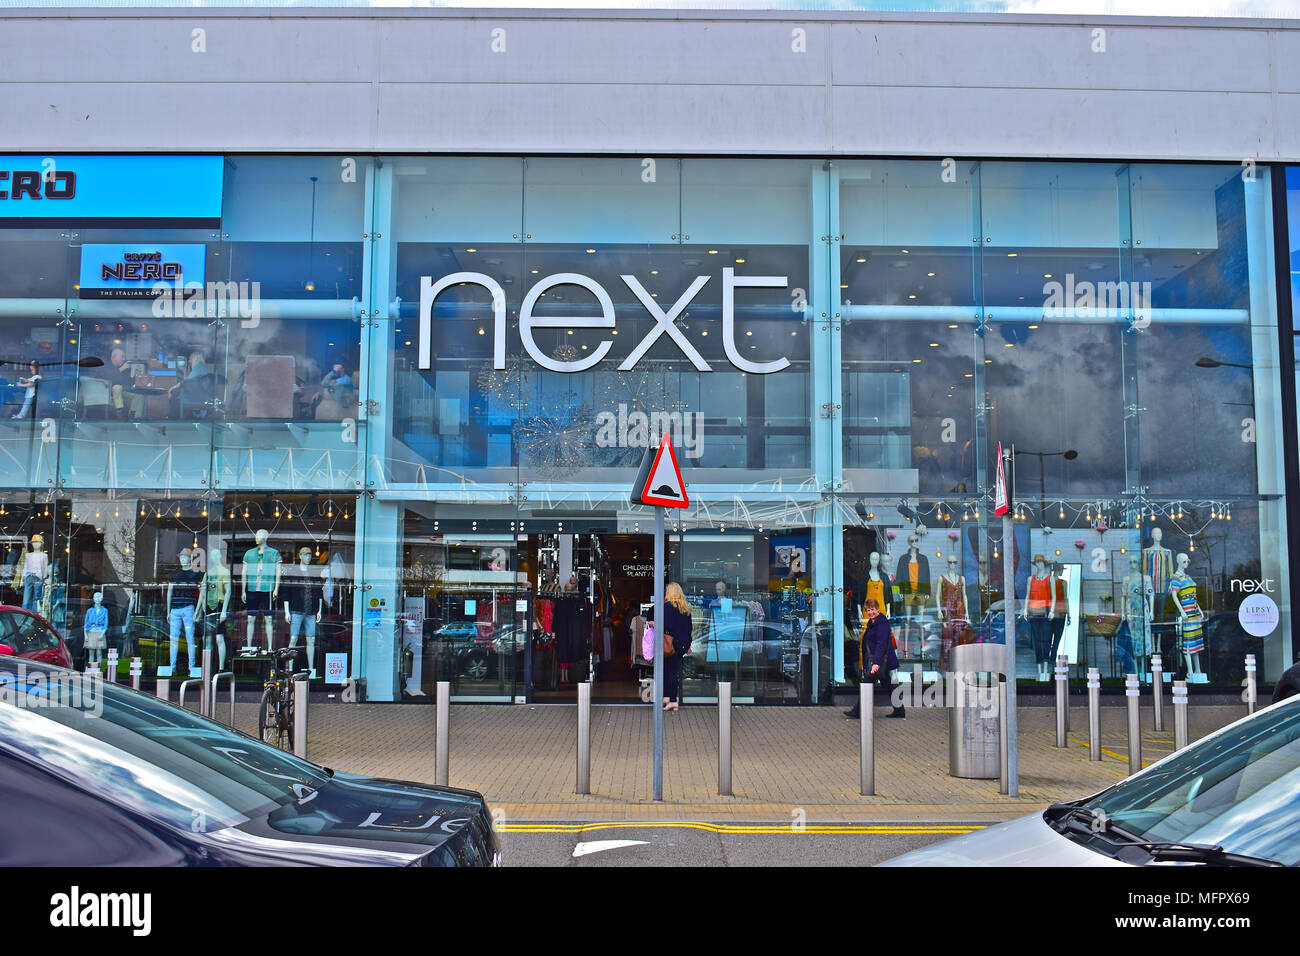 Next is a modern and trendy retail clothing store in the out of town area known as Capital Retail Park, Cardiff, South Wales - Stock Image